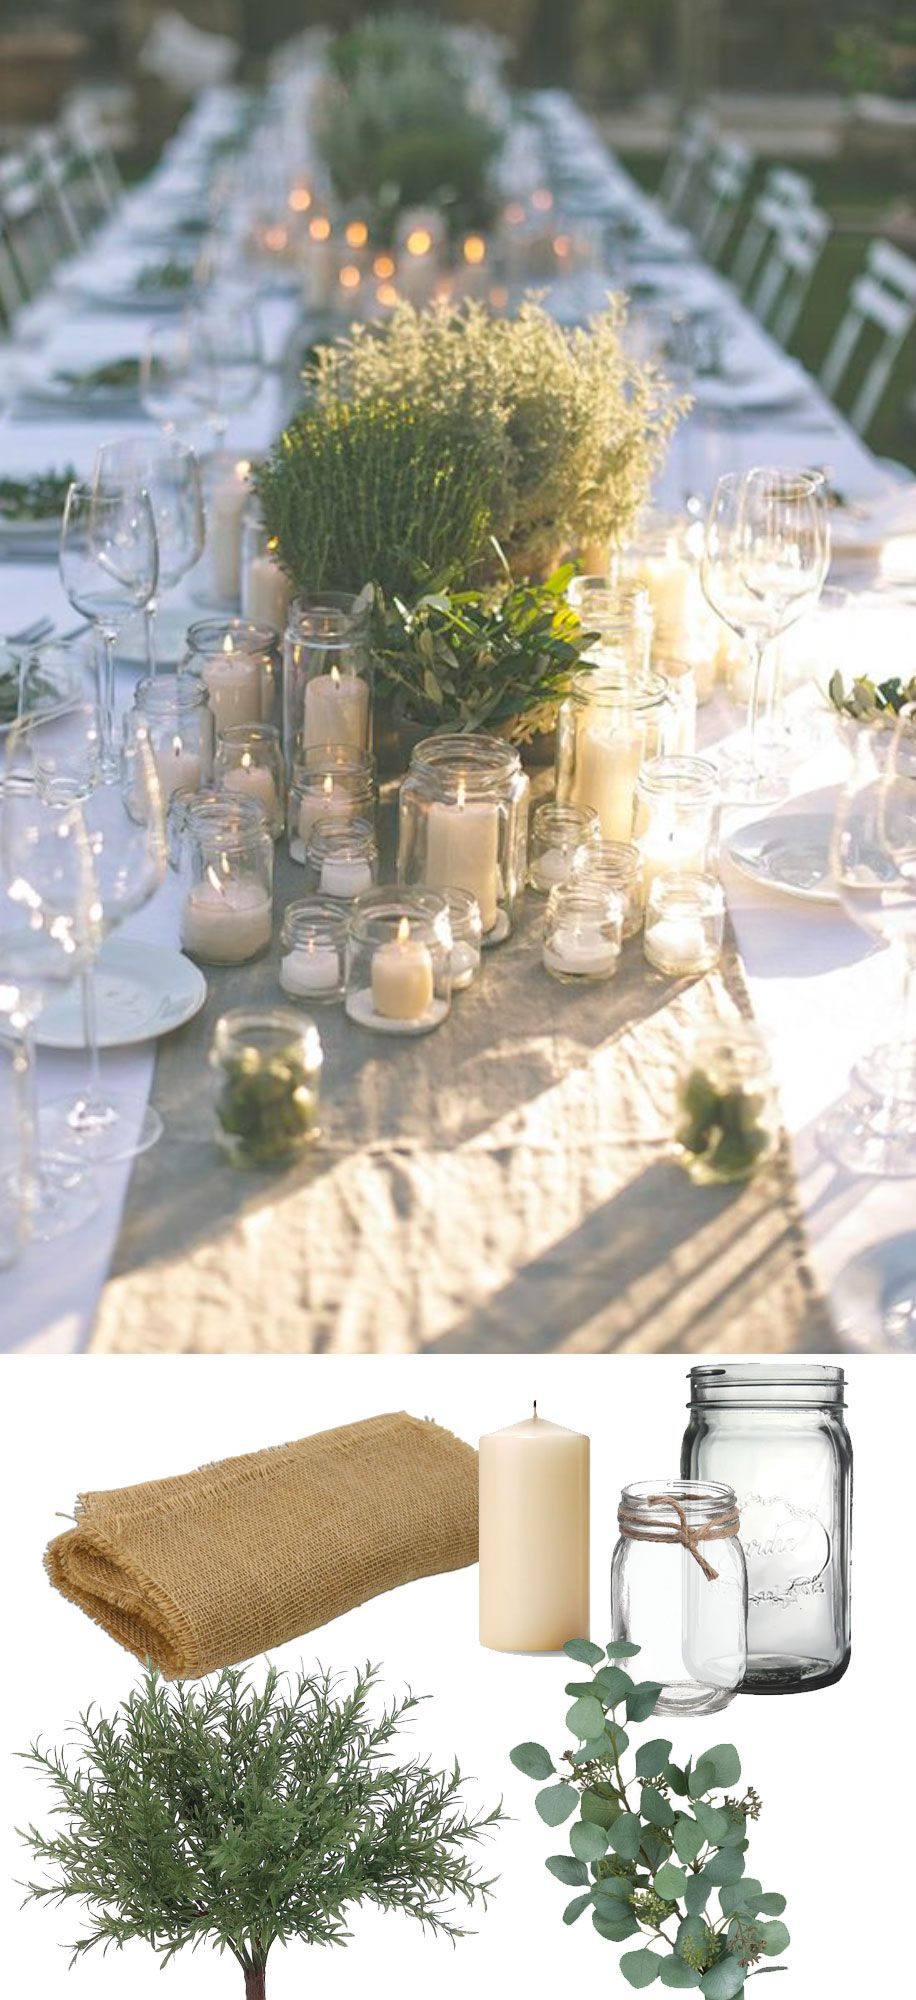 Party Tischdeko Beautiful Rustic Green Tablescape. Recreate This Look With